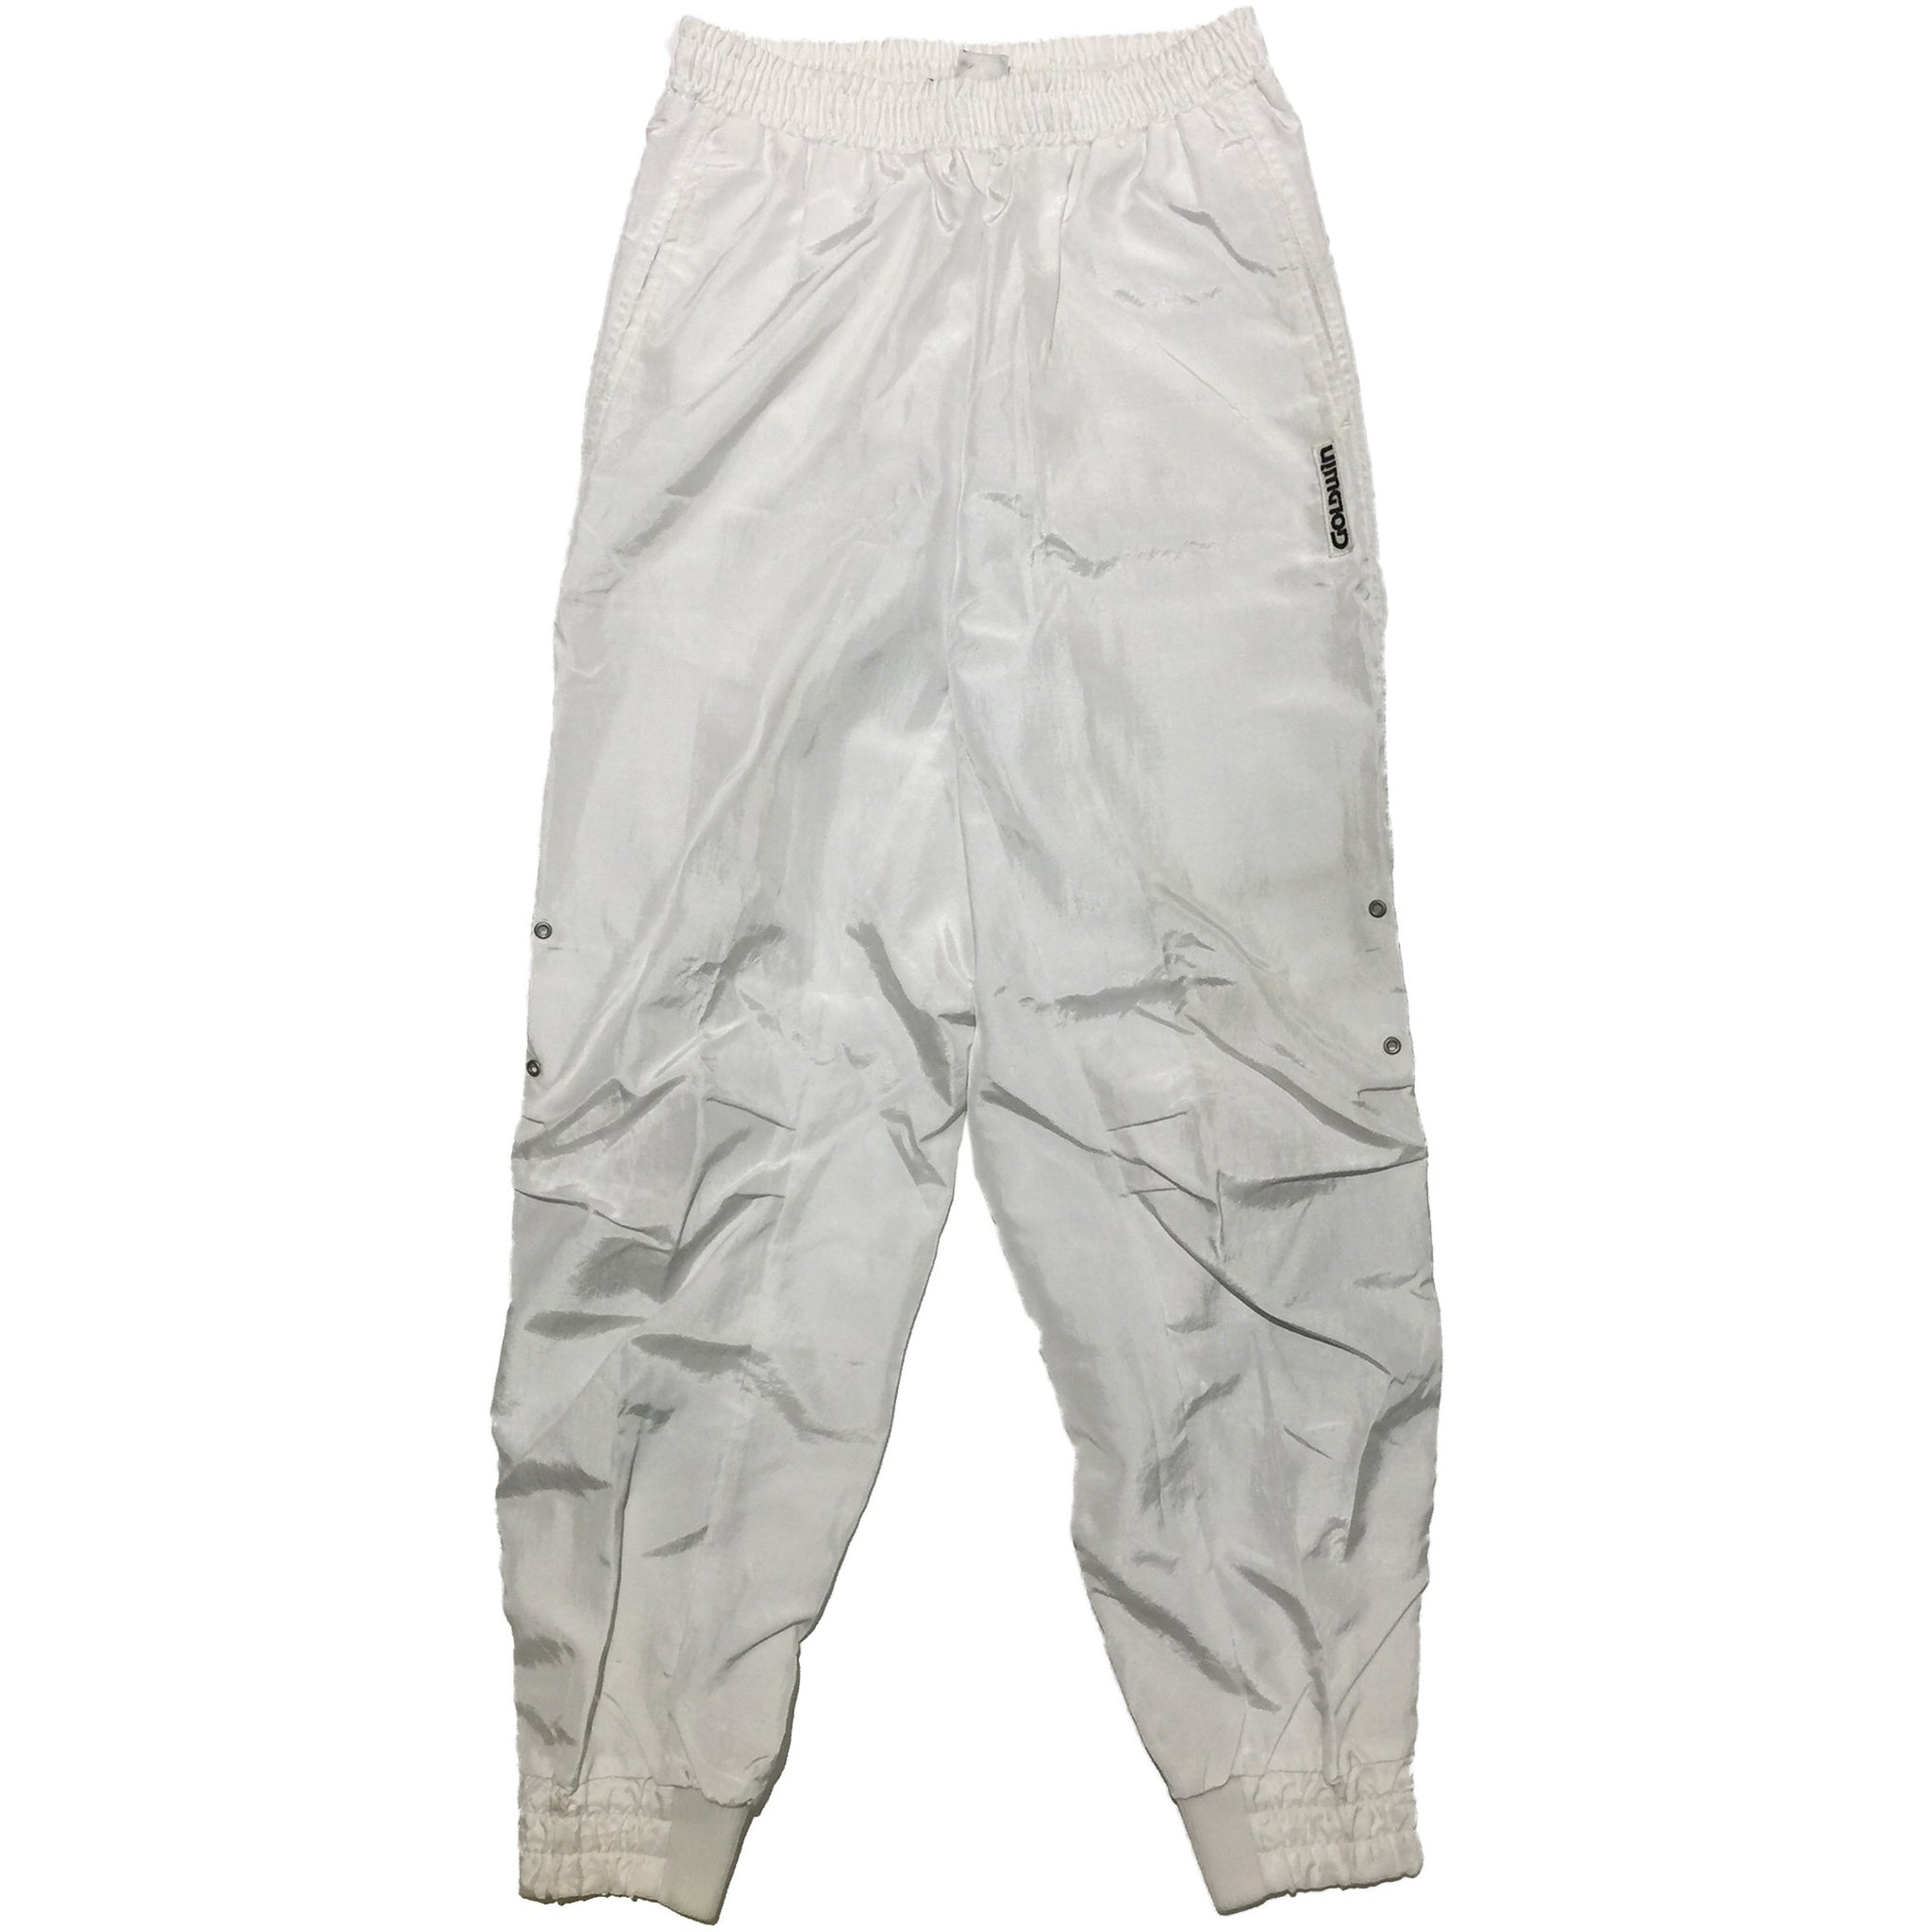 Goldwin White Pants